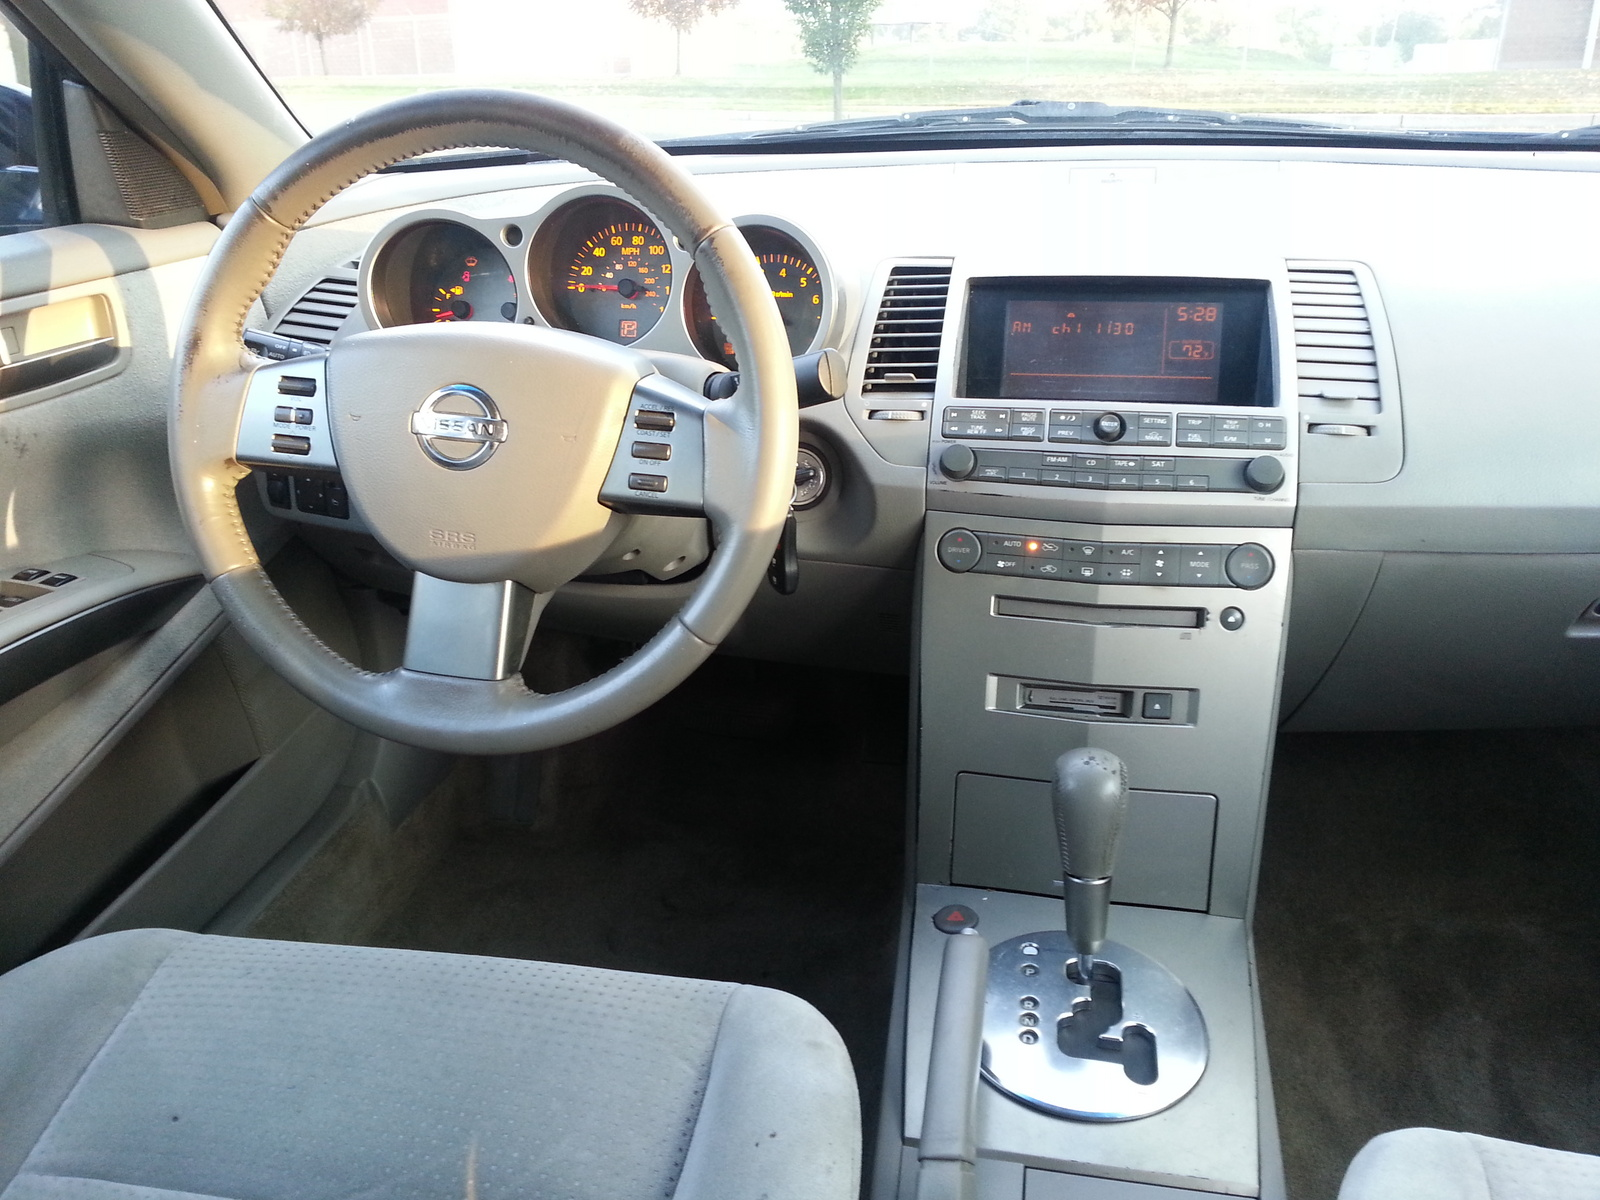 replacing automatic shifter - nissan forums : nissan forum